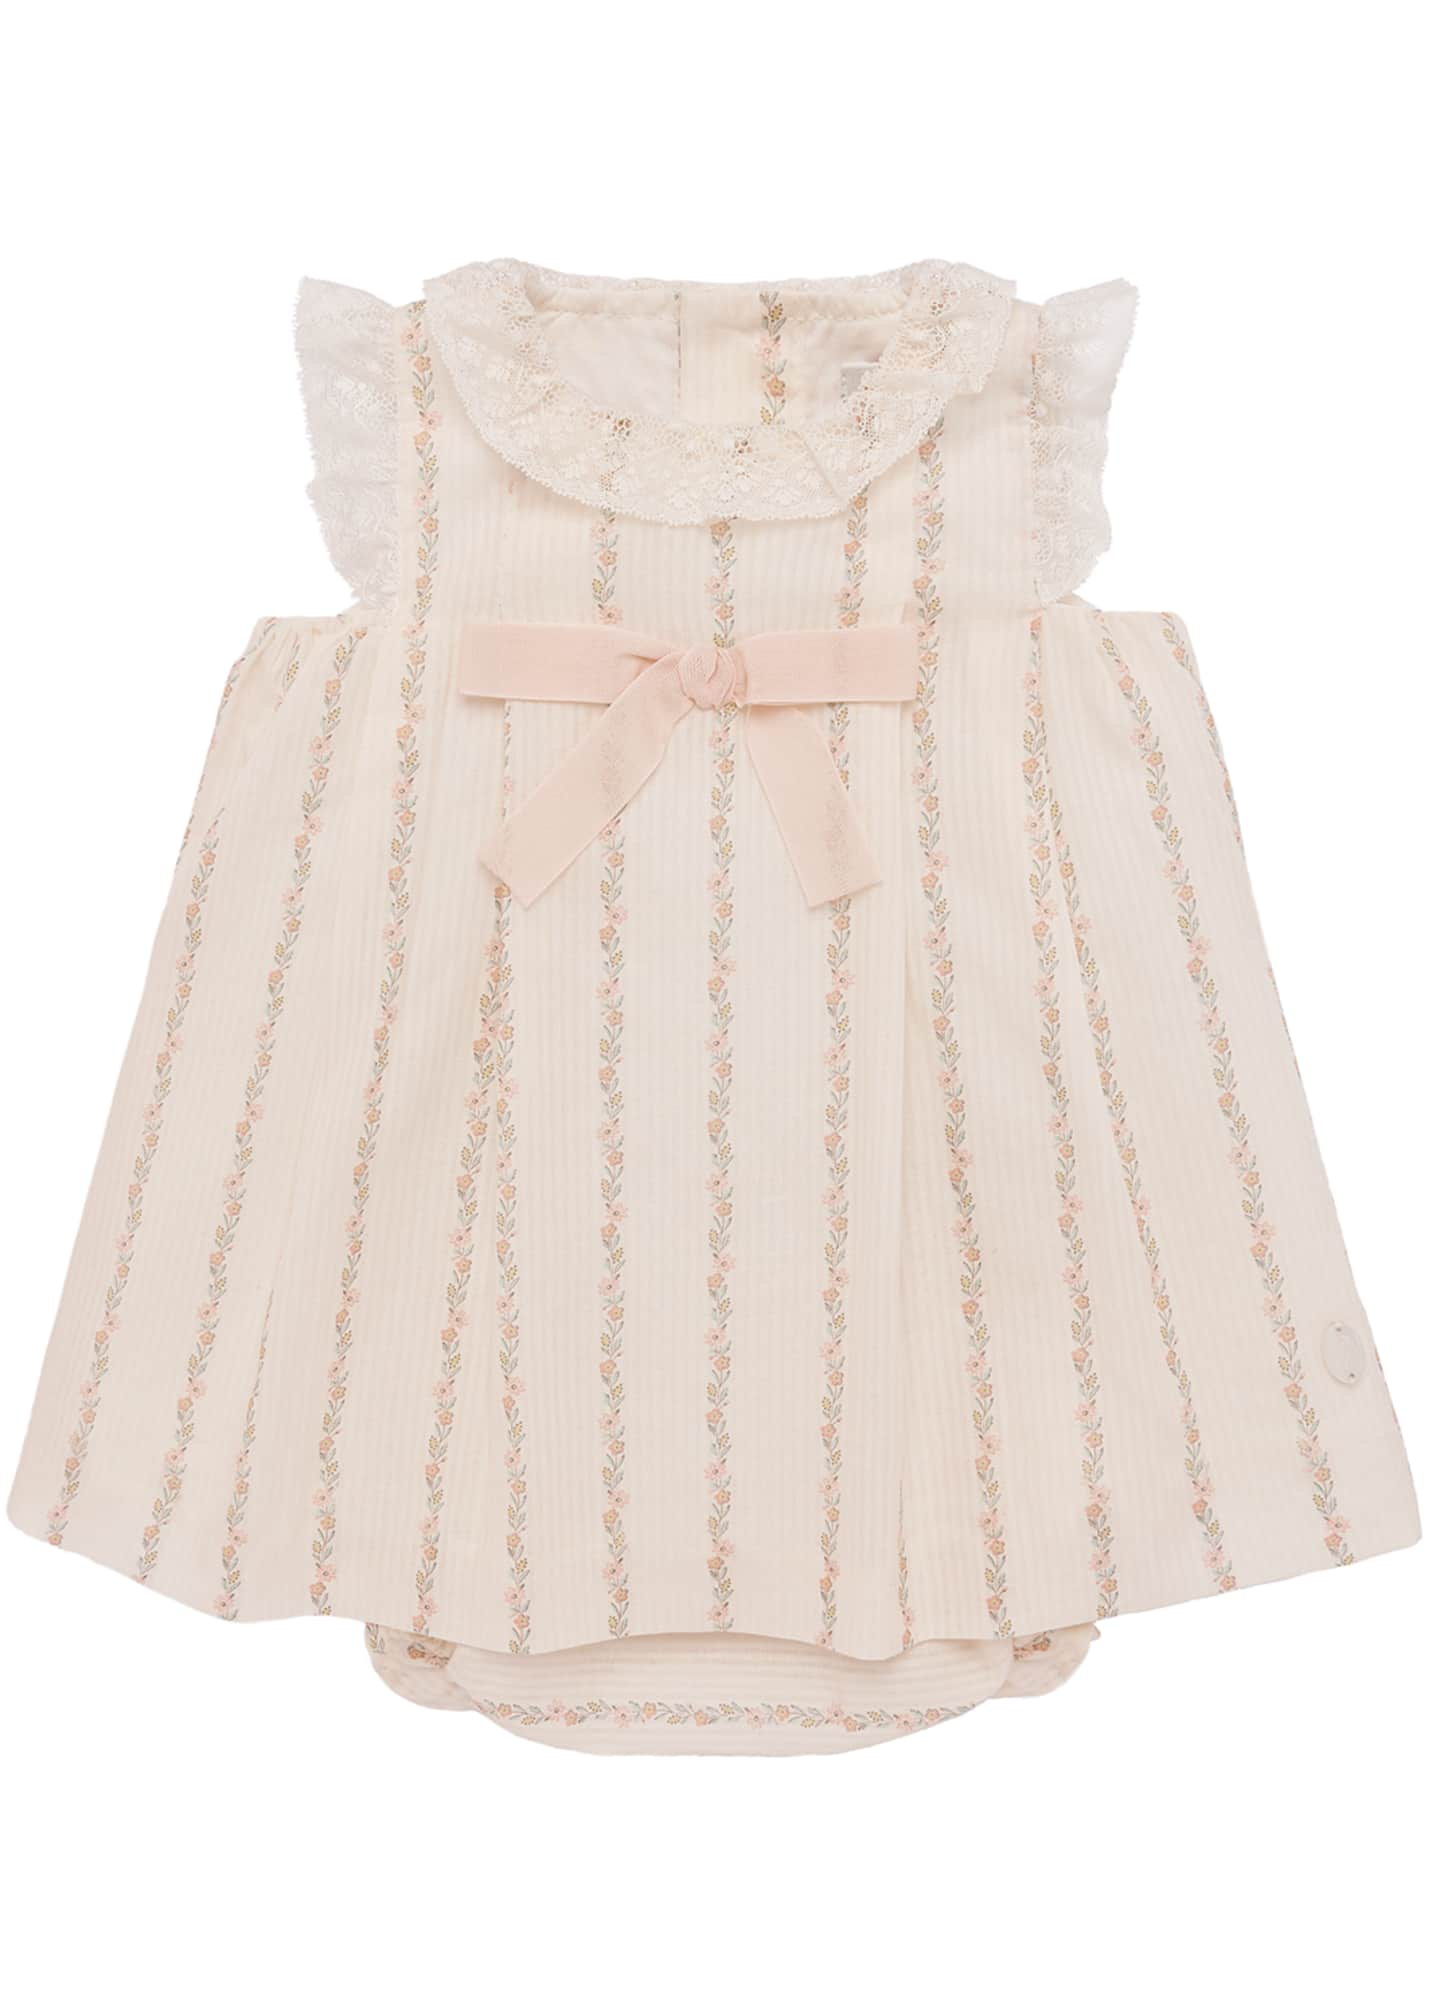 Pili Carrera Lace-Trim Floral Striped Dress w/ Bloomers,